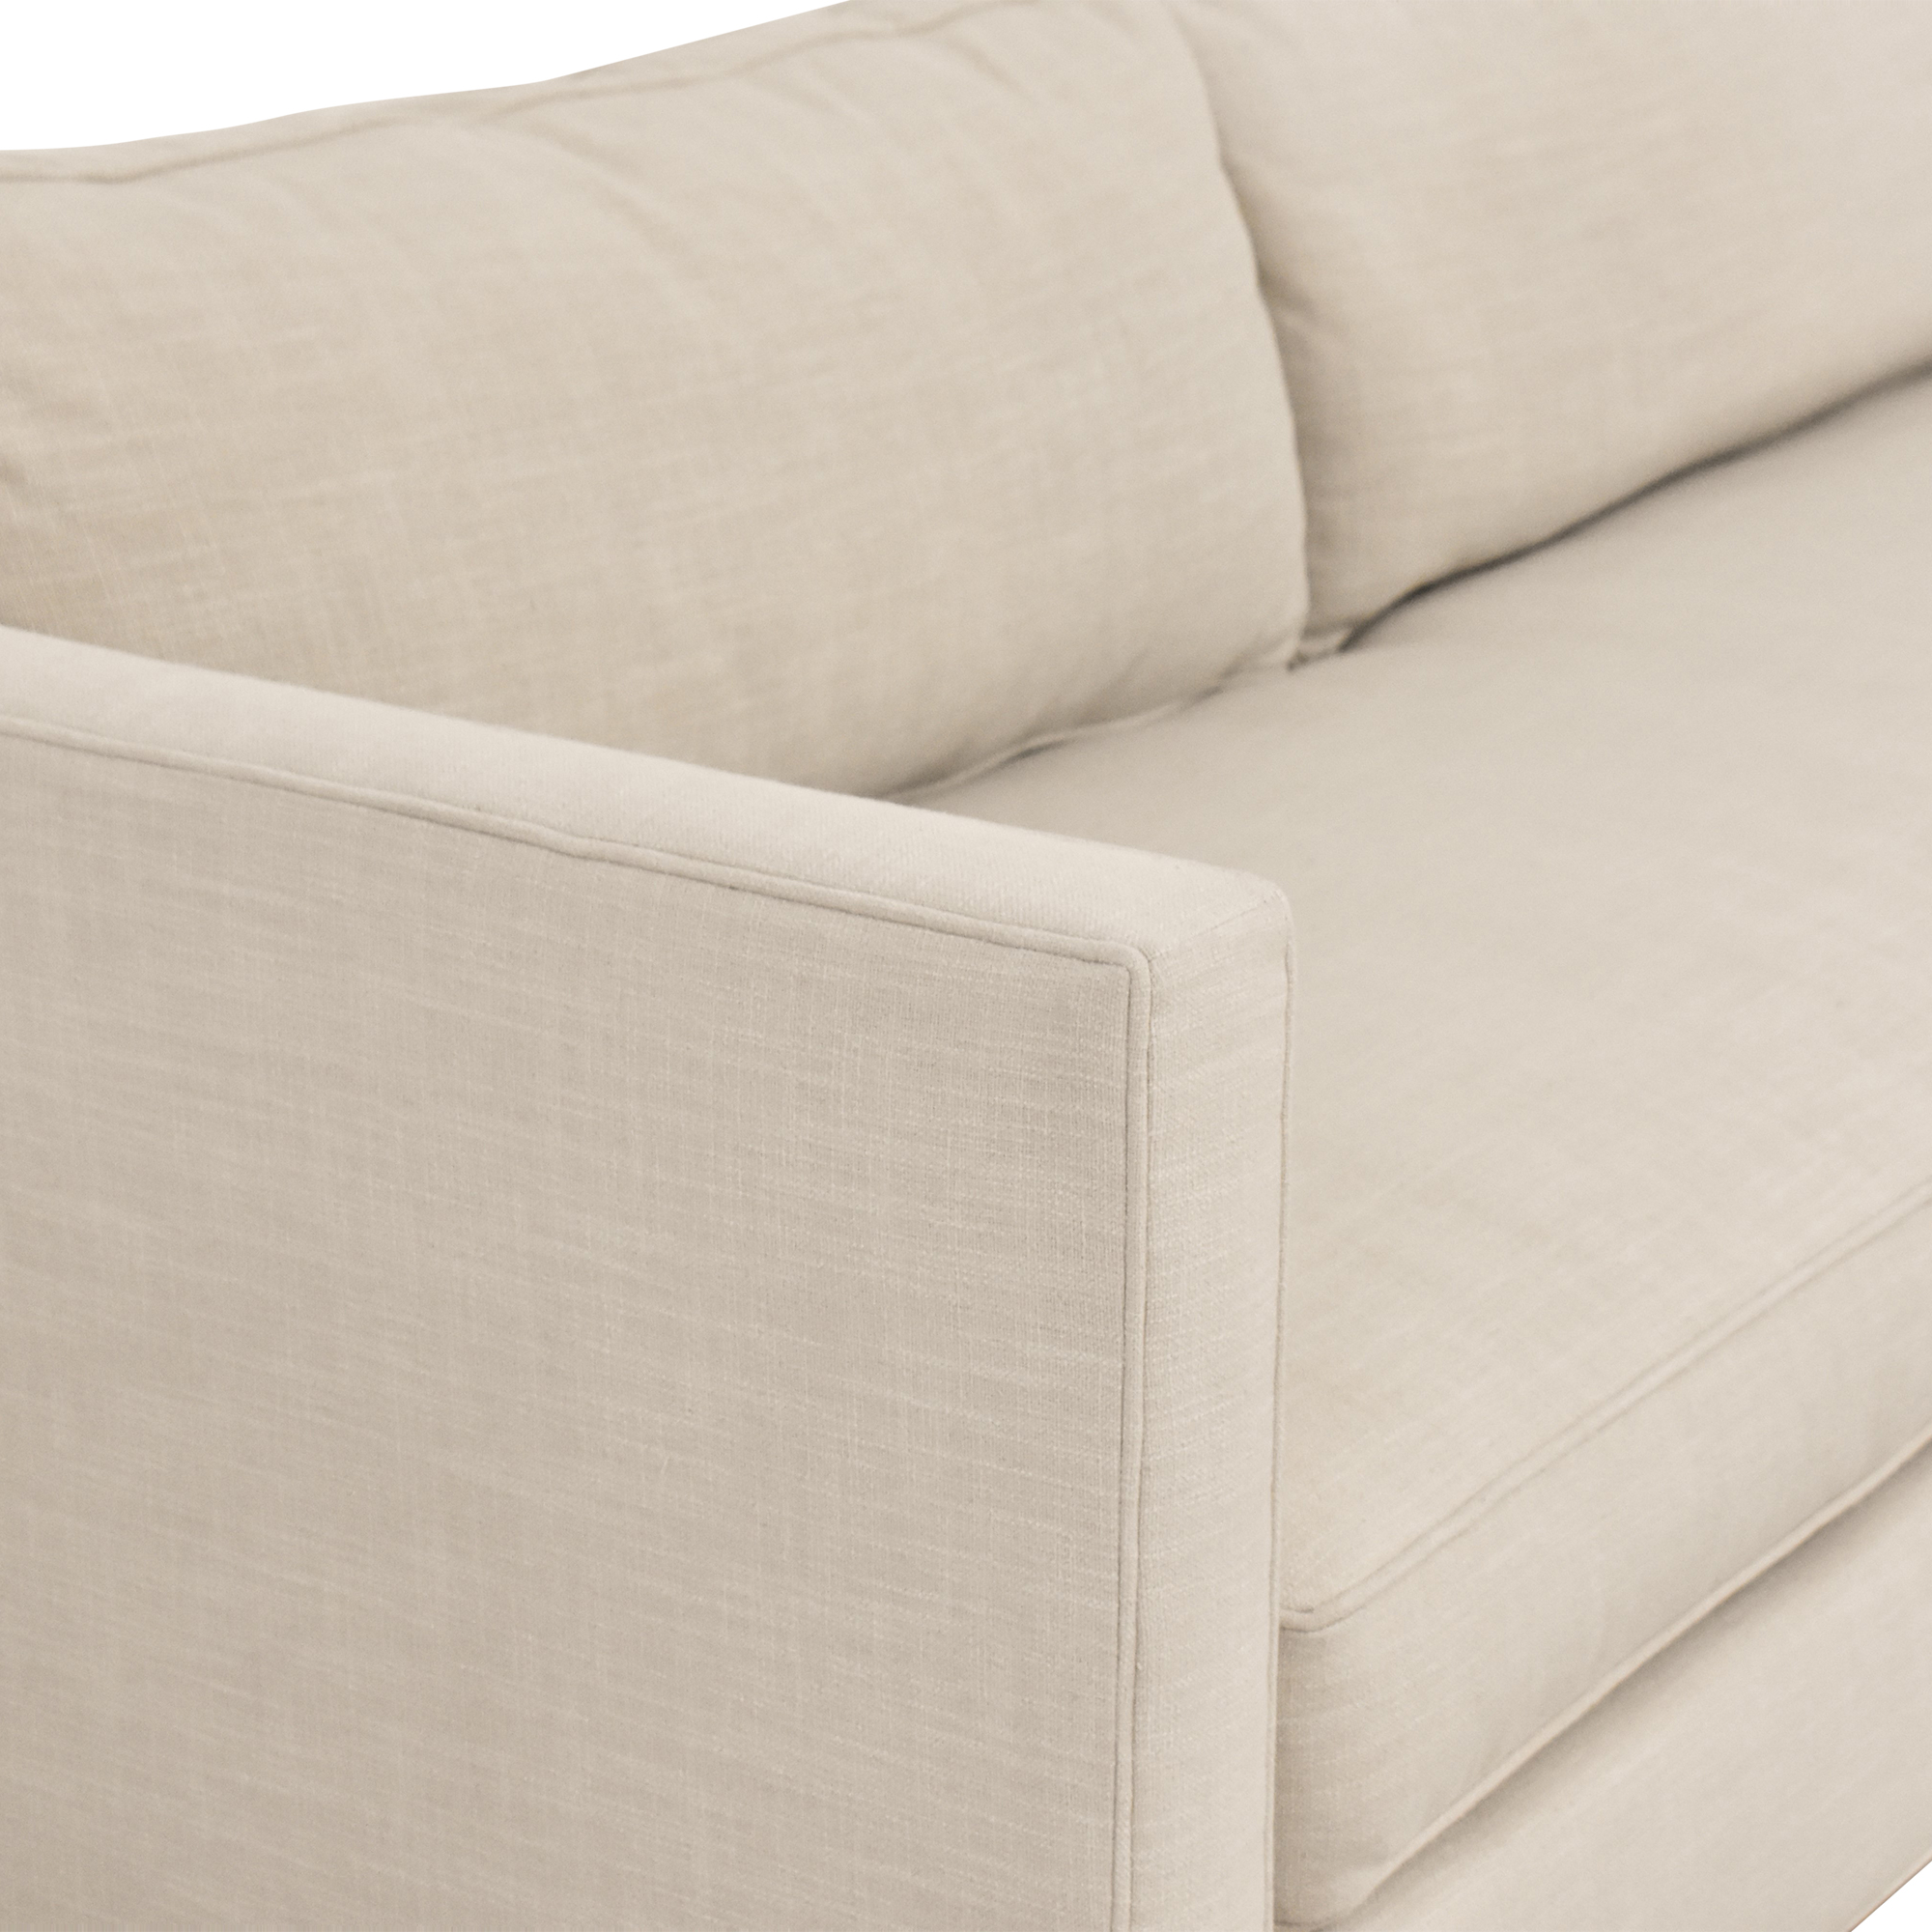 West Elm West Elm Dunham Sofa discount